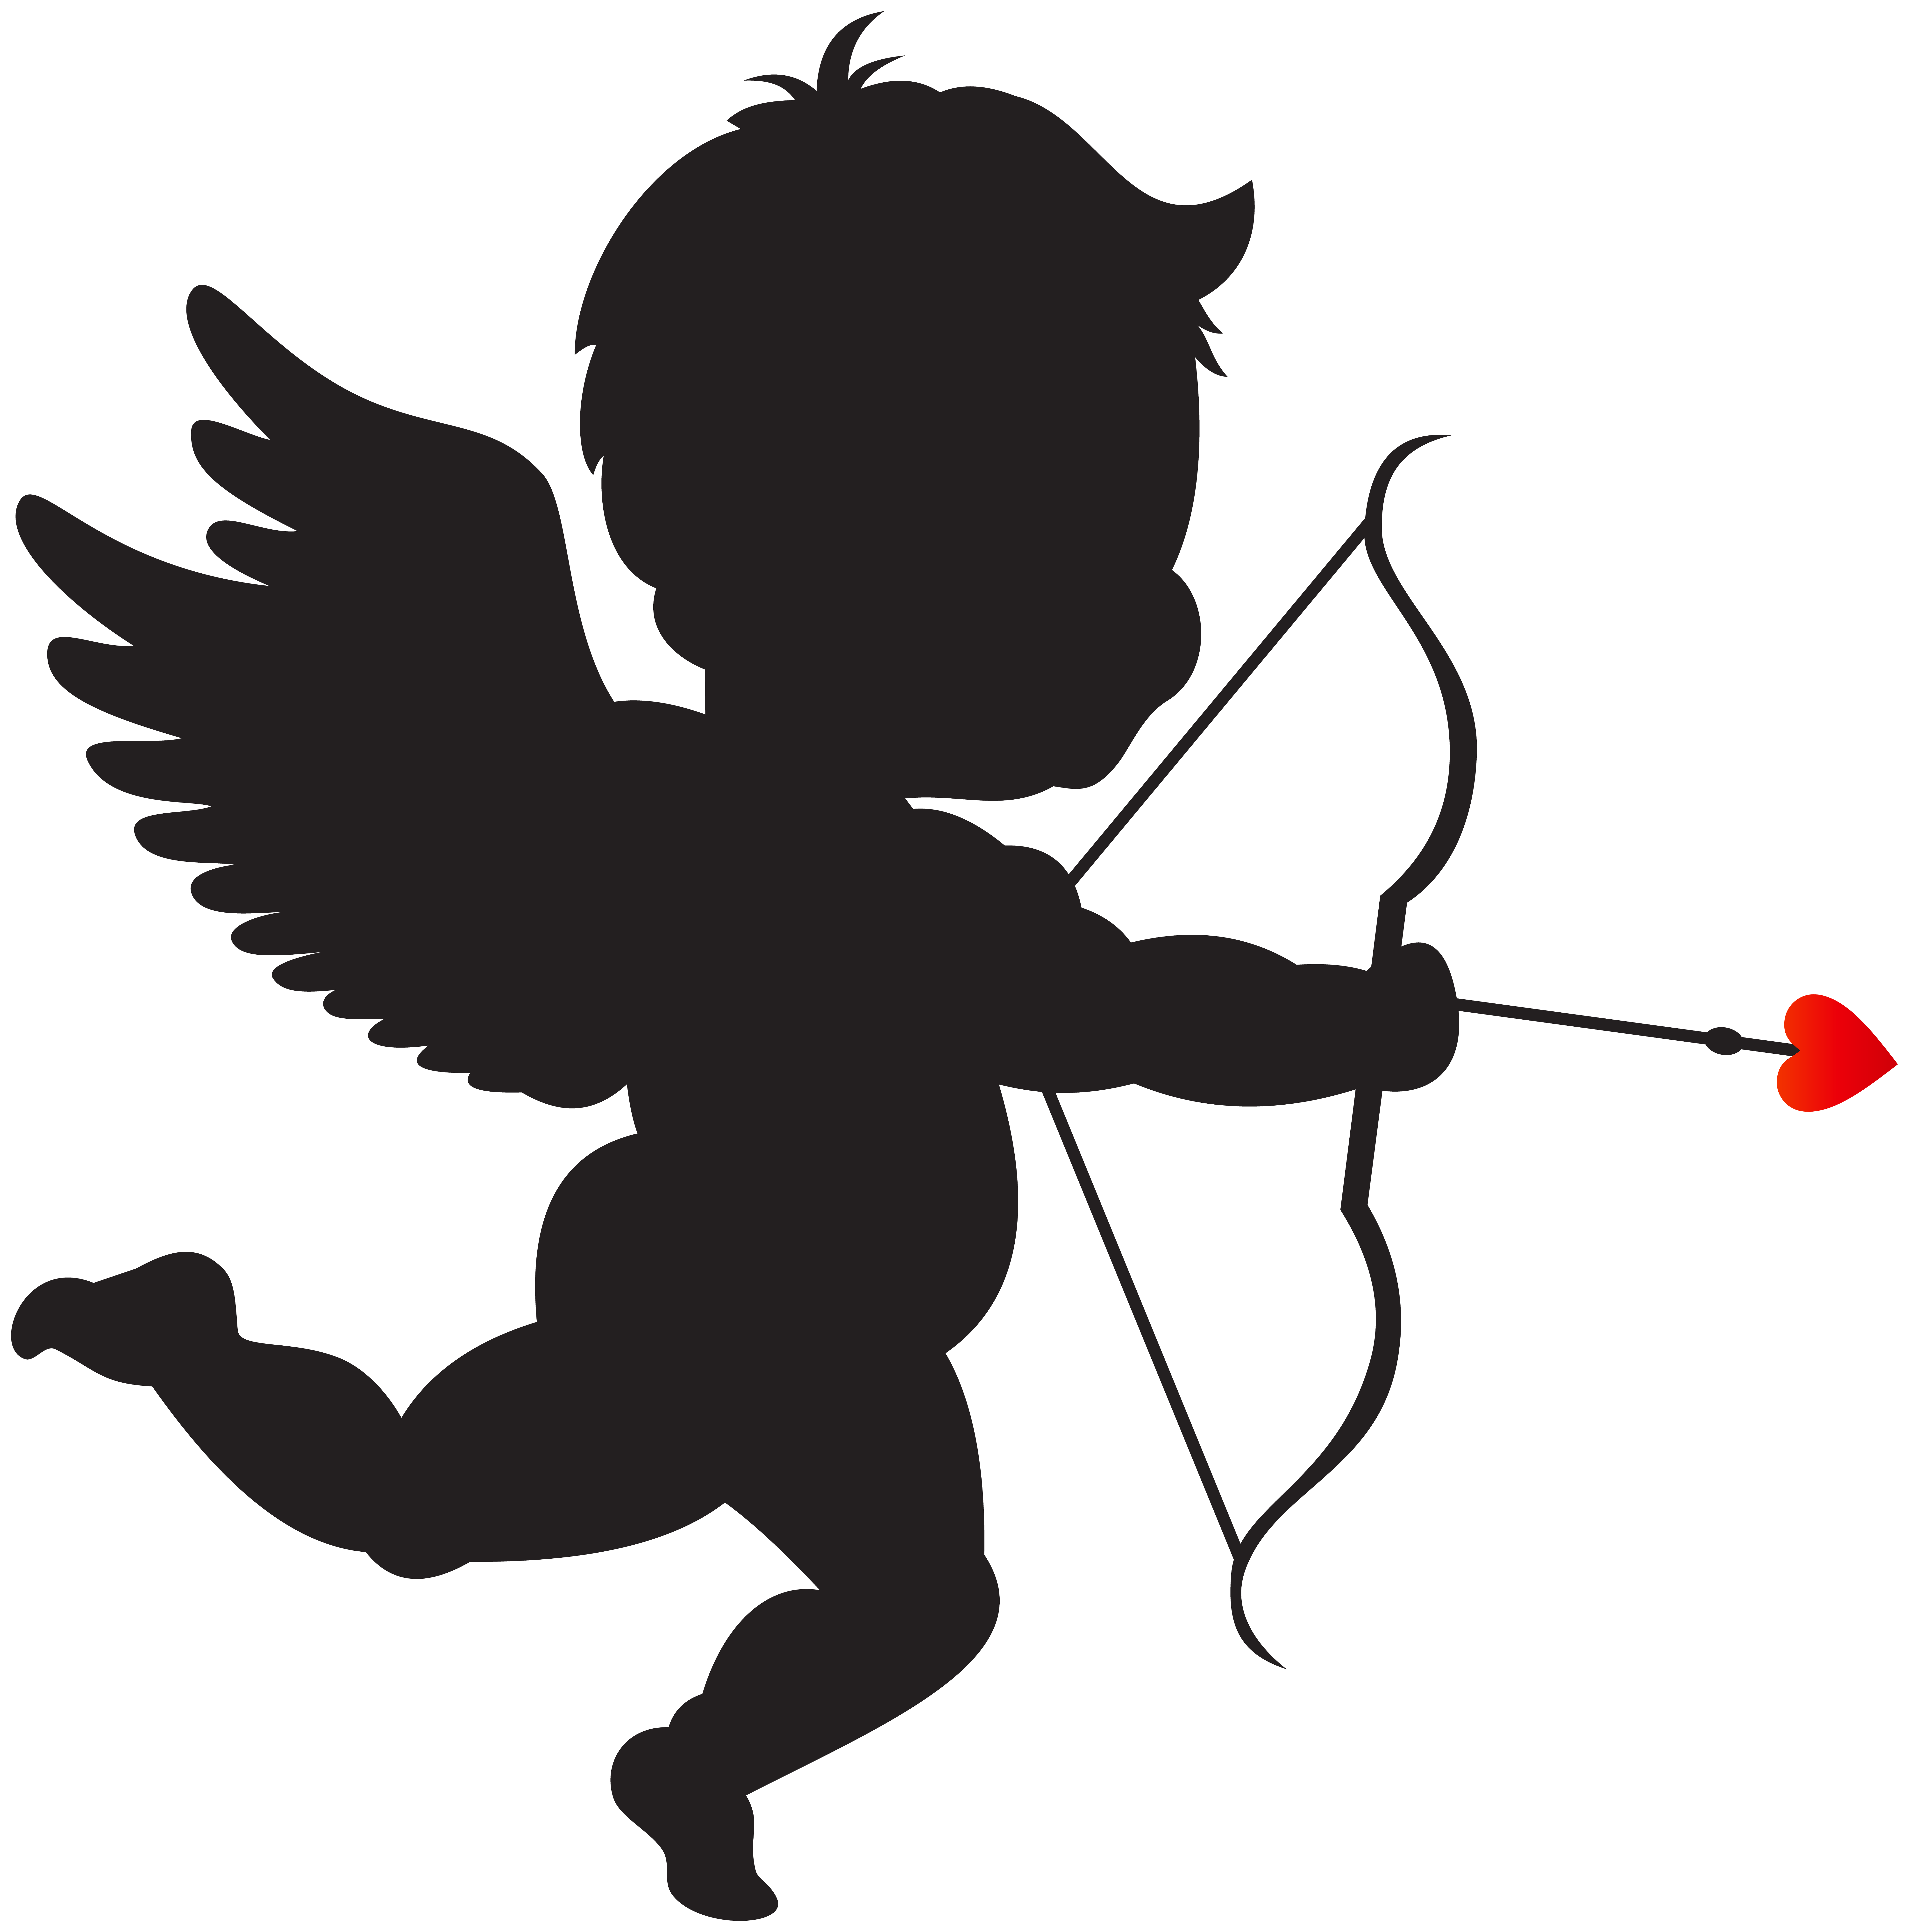 medium resolution of cupid with bow silhouette png clip art image